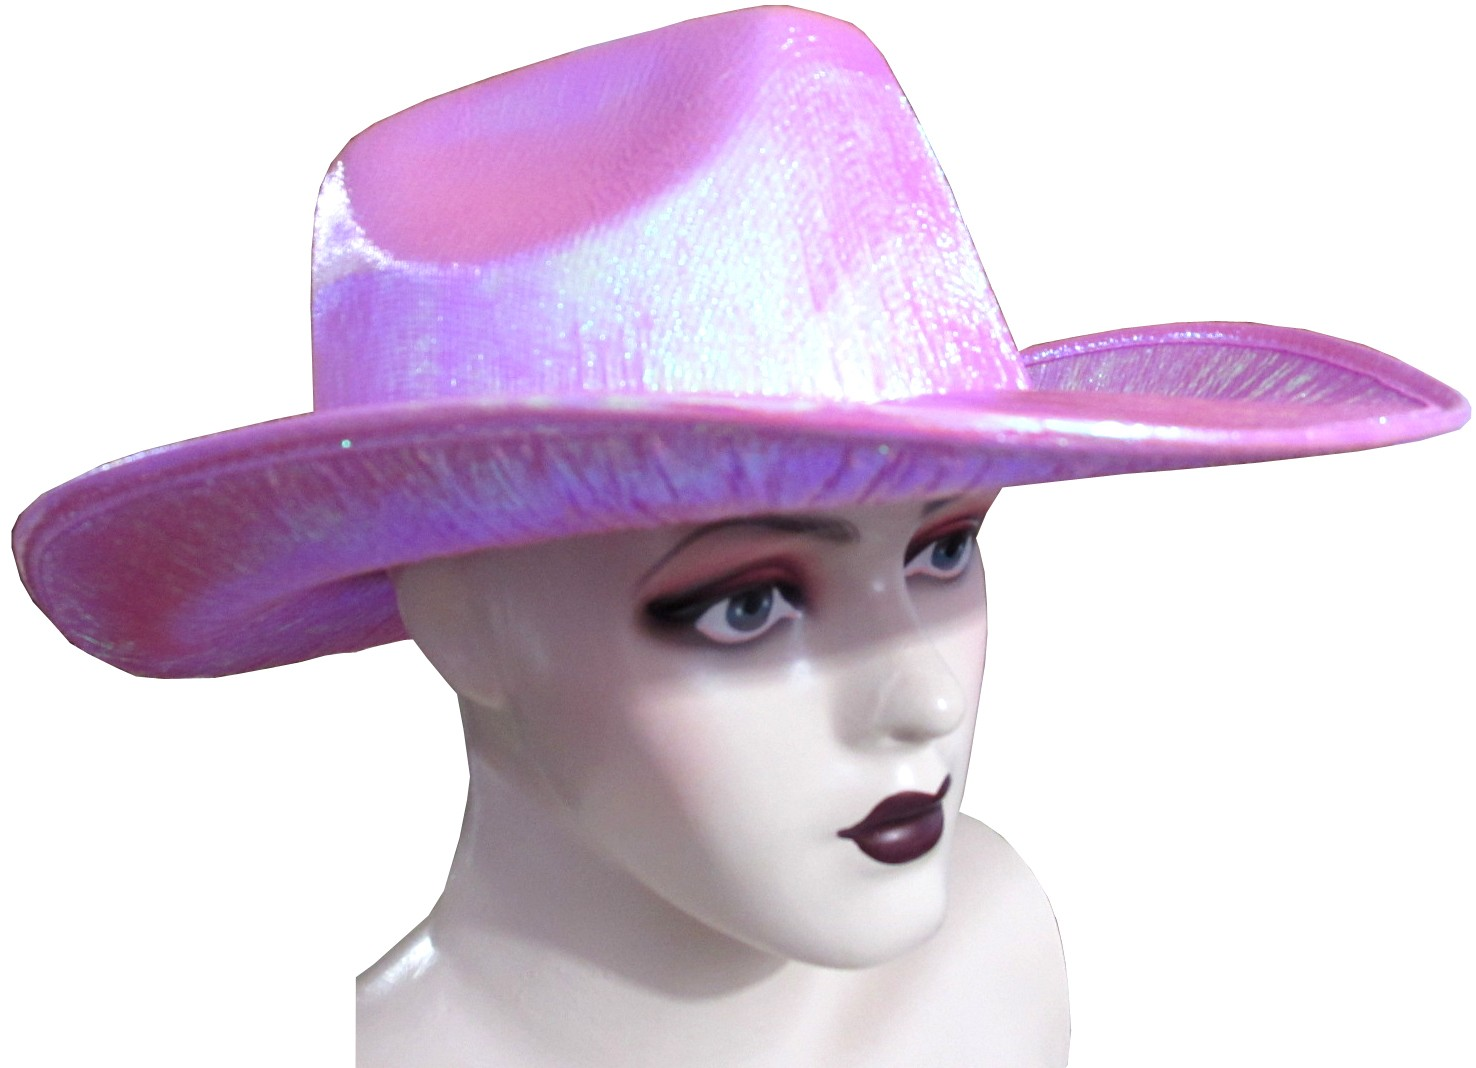 Stylish Pink Party Hats For Women